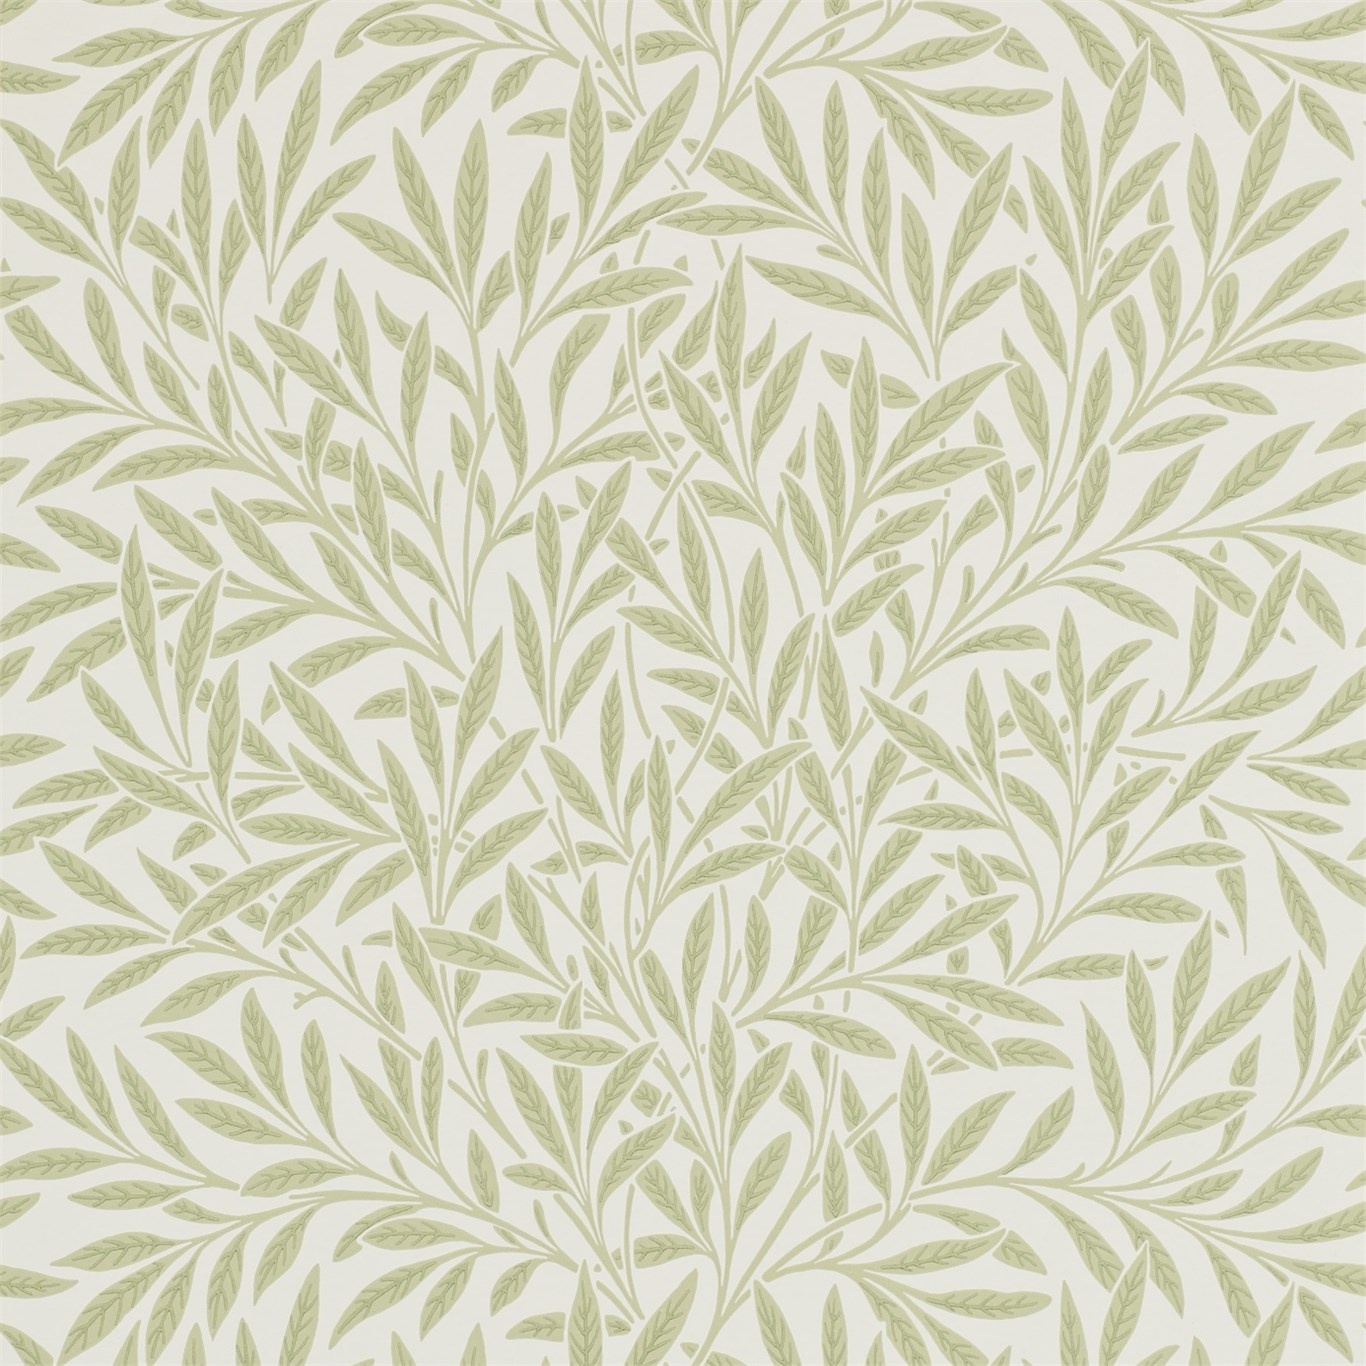 Image of Morris & Co Willow Olive Wallpaper 210383